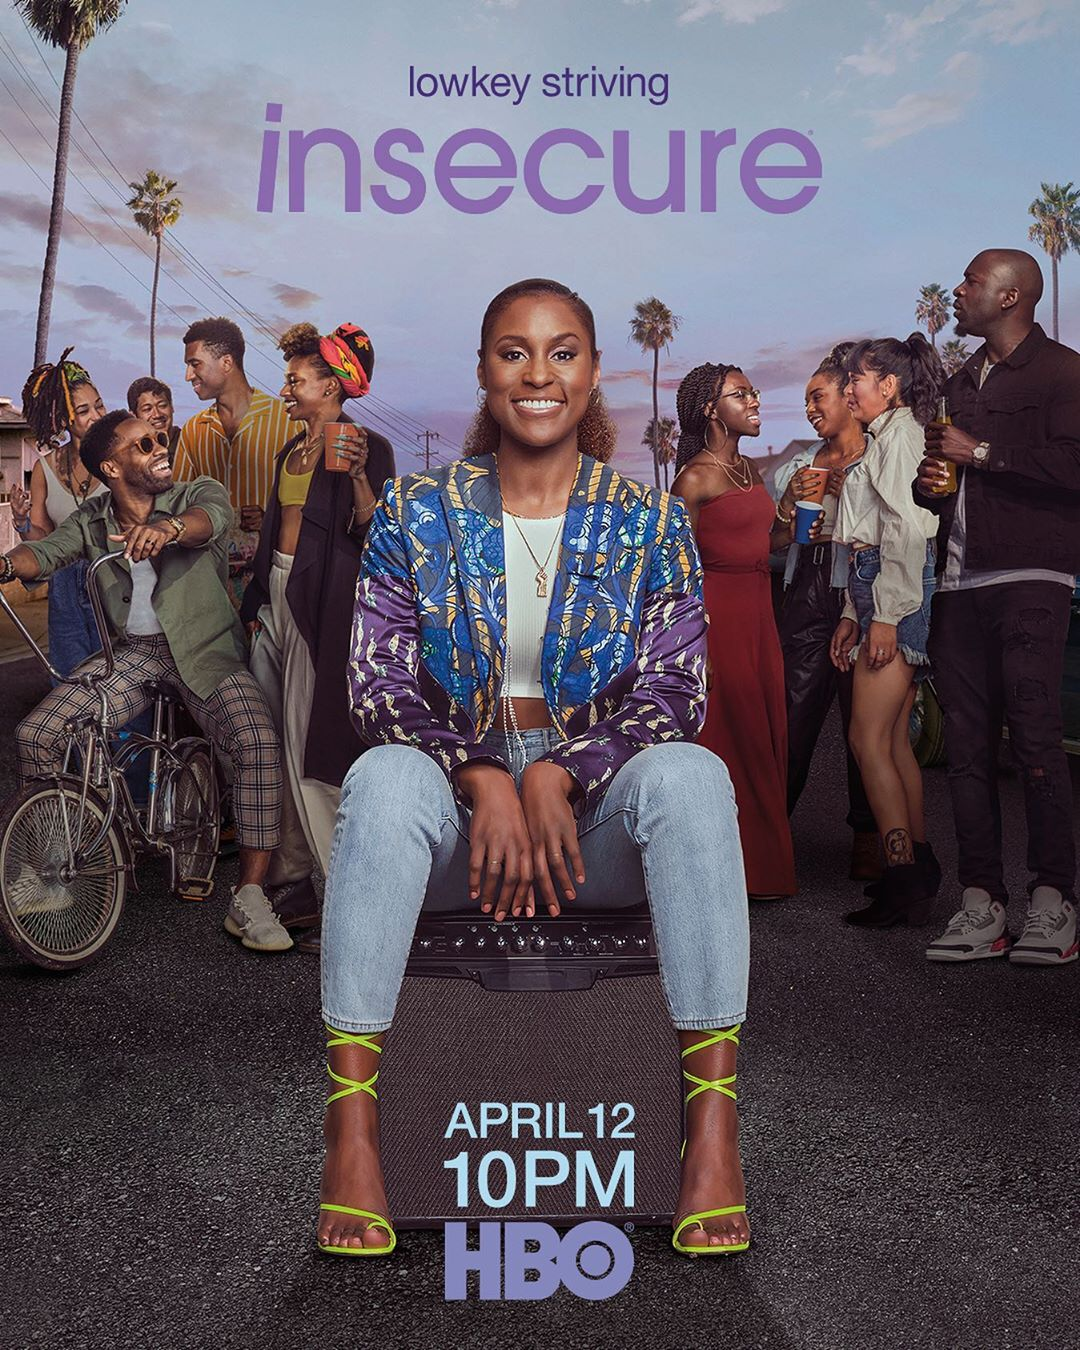 First Look: Insecure Season 4 Starring Issa Rae